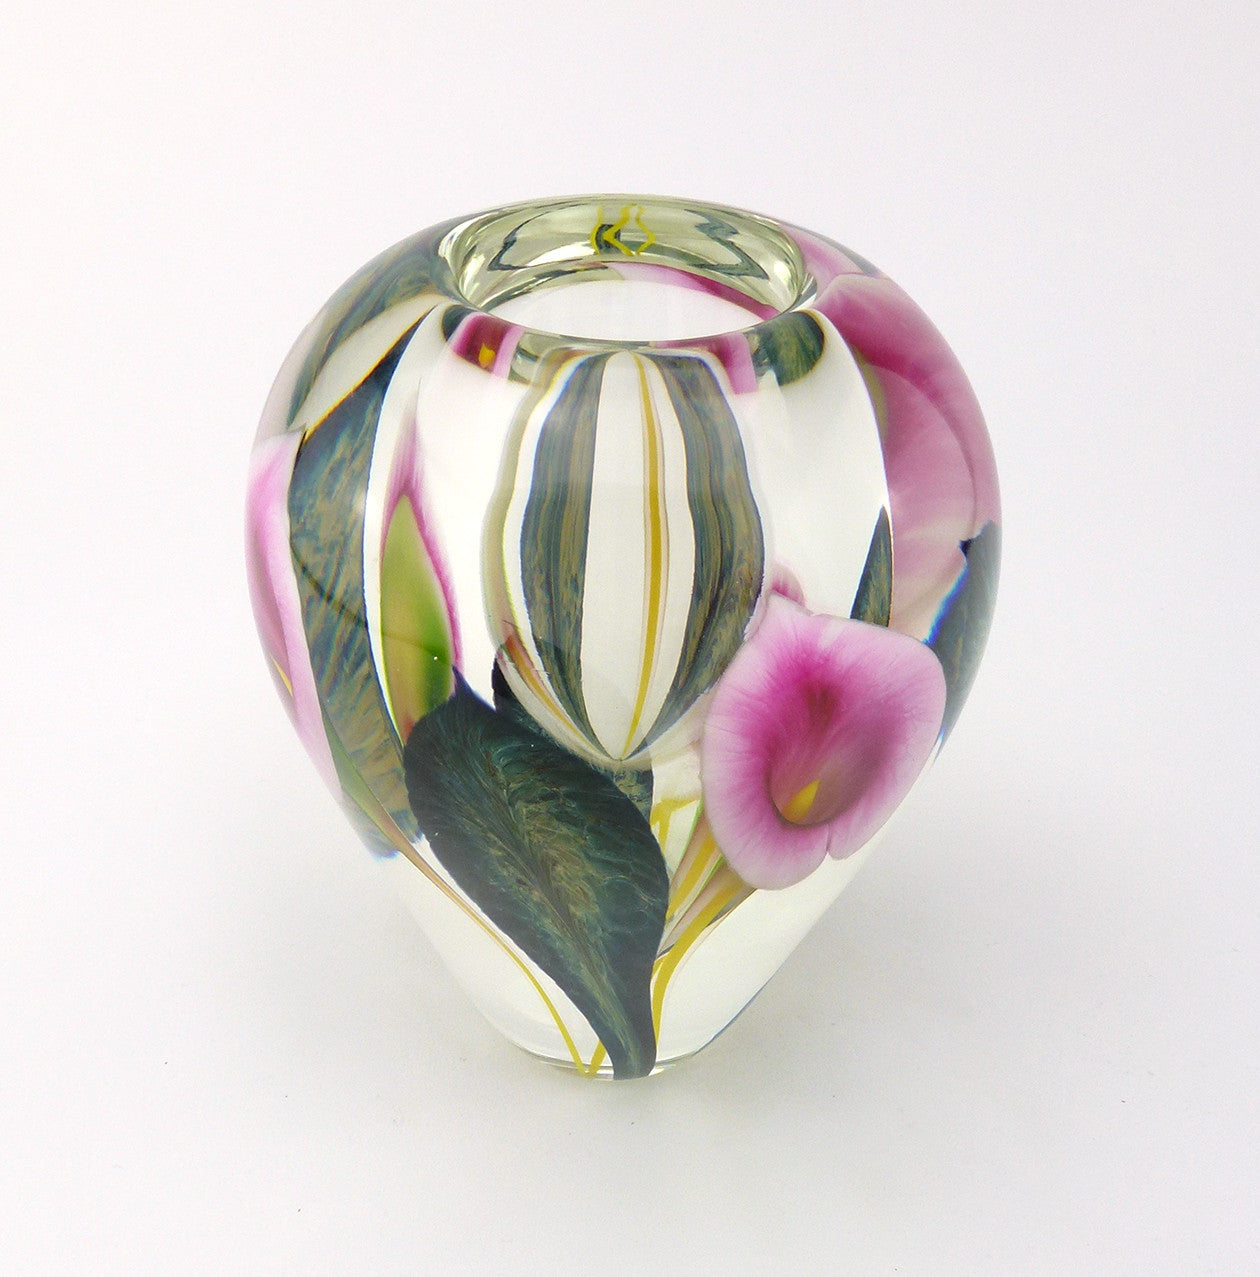 SOLD American Studio Art Glass Vase by Scott Bayless for Lotton Studios